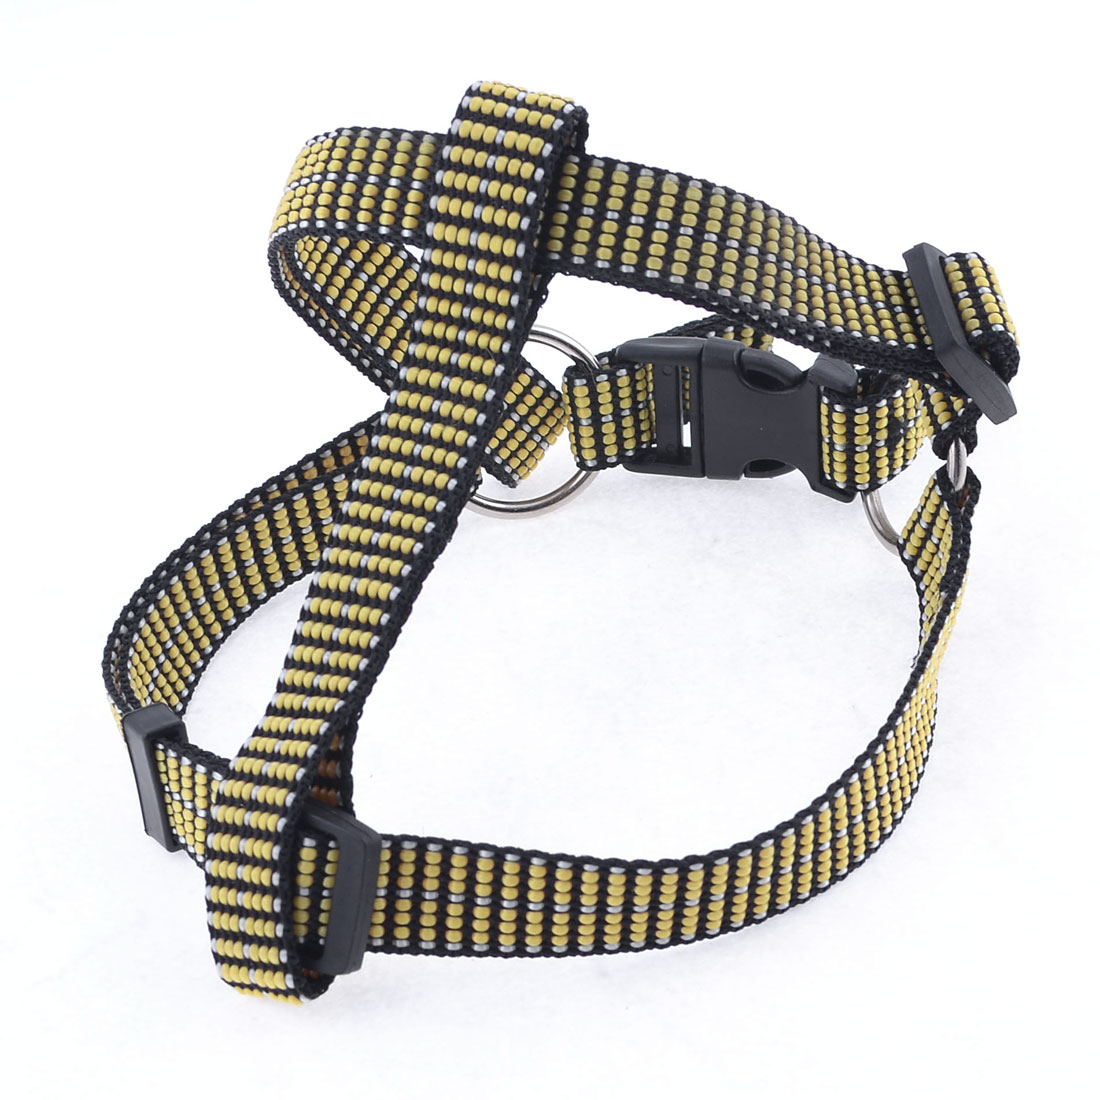 "Textured Nylon Chest Strap Adjustable Dog Harness 0.75"" Width Size L"